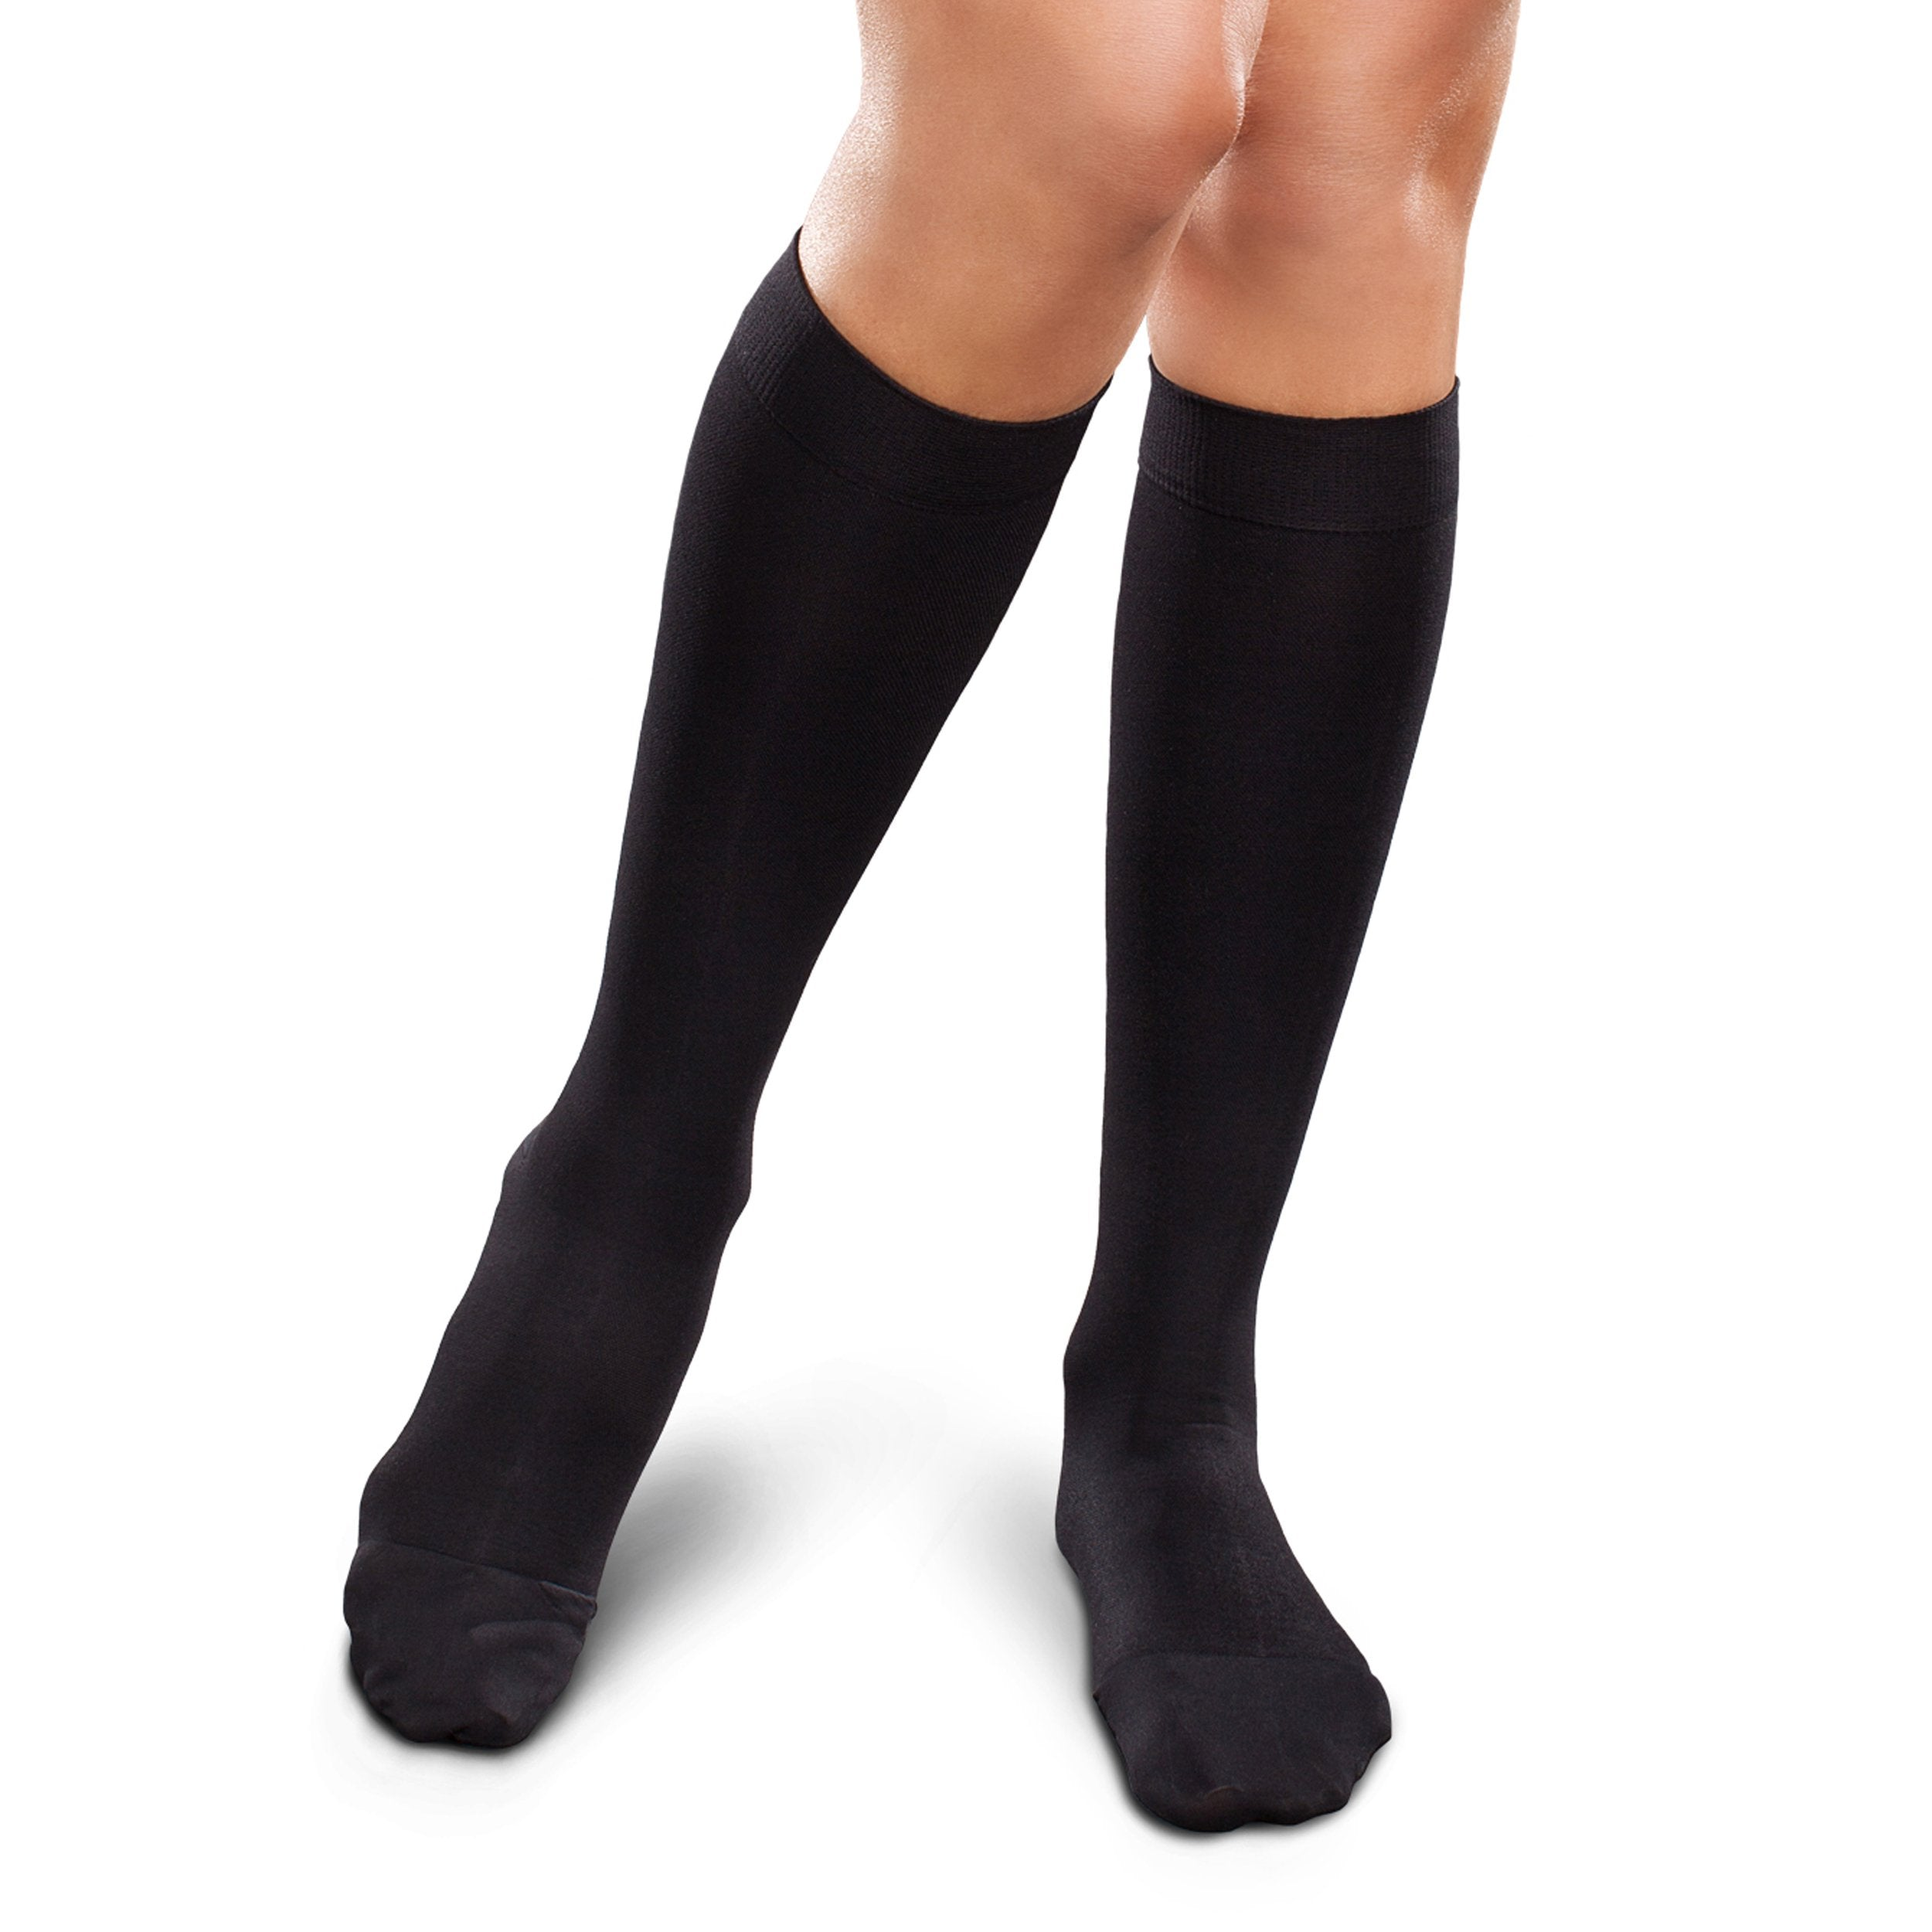 f92a349a431f8 Therafirm Opaque Women's Knee High Support Stockings - Mild (15-20mmHg) Graduated  Compression.